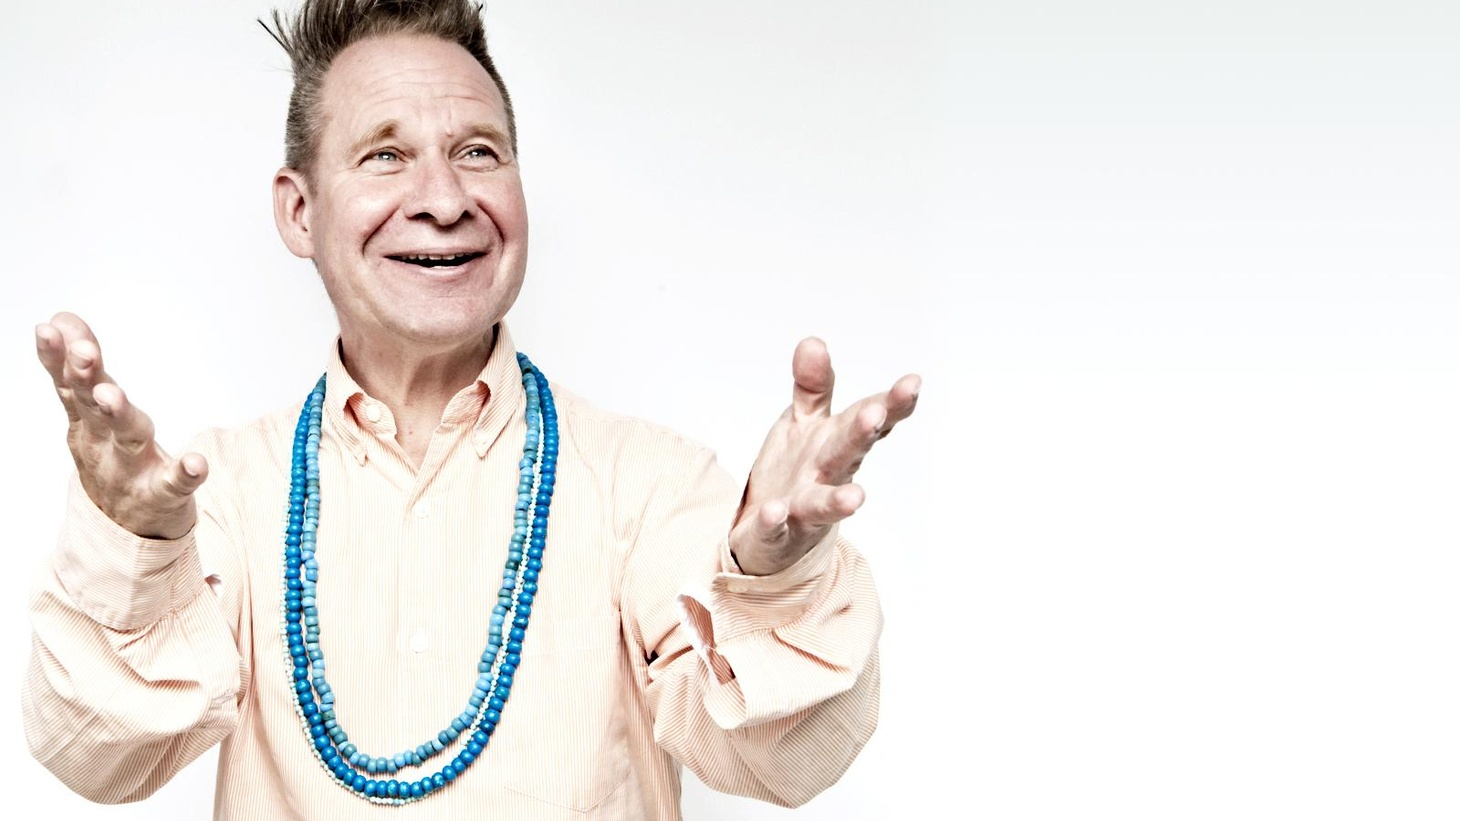 Theater Director Peter Sellars travels the world nearly nonstop and his Guest DJ set is a reflection of his journeys.